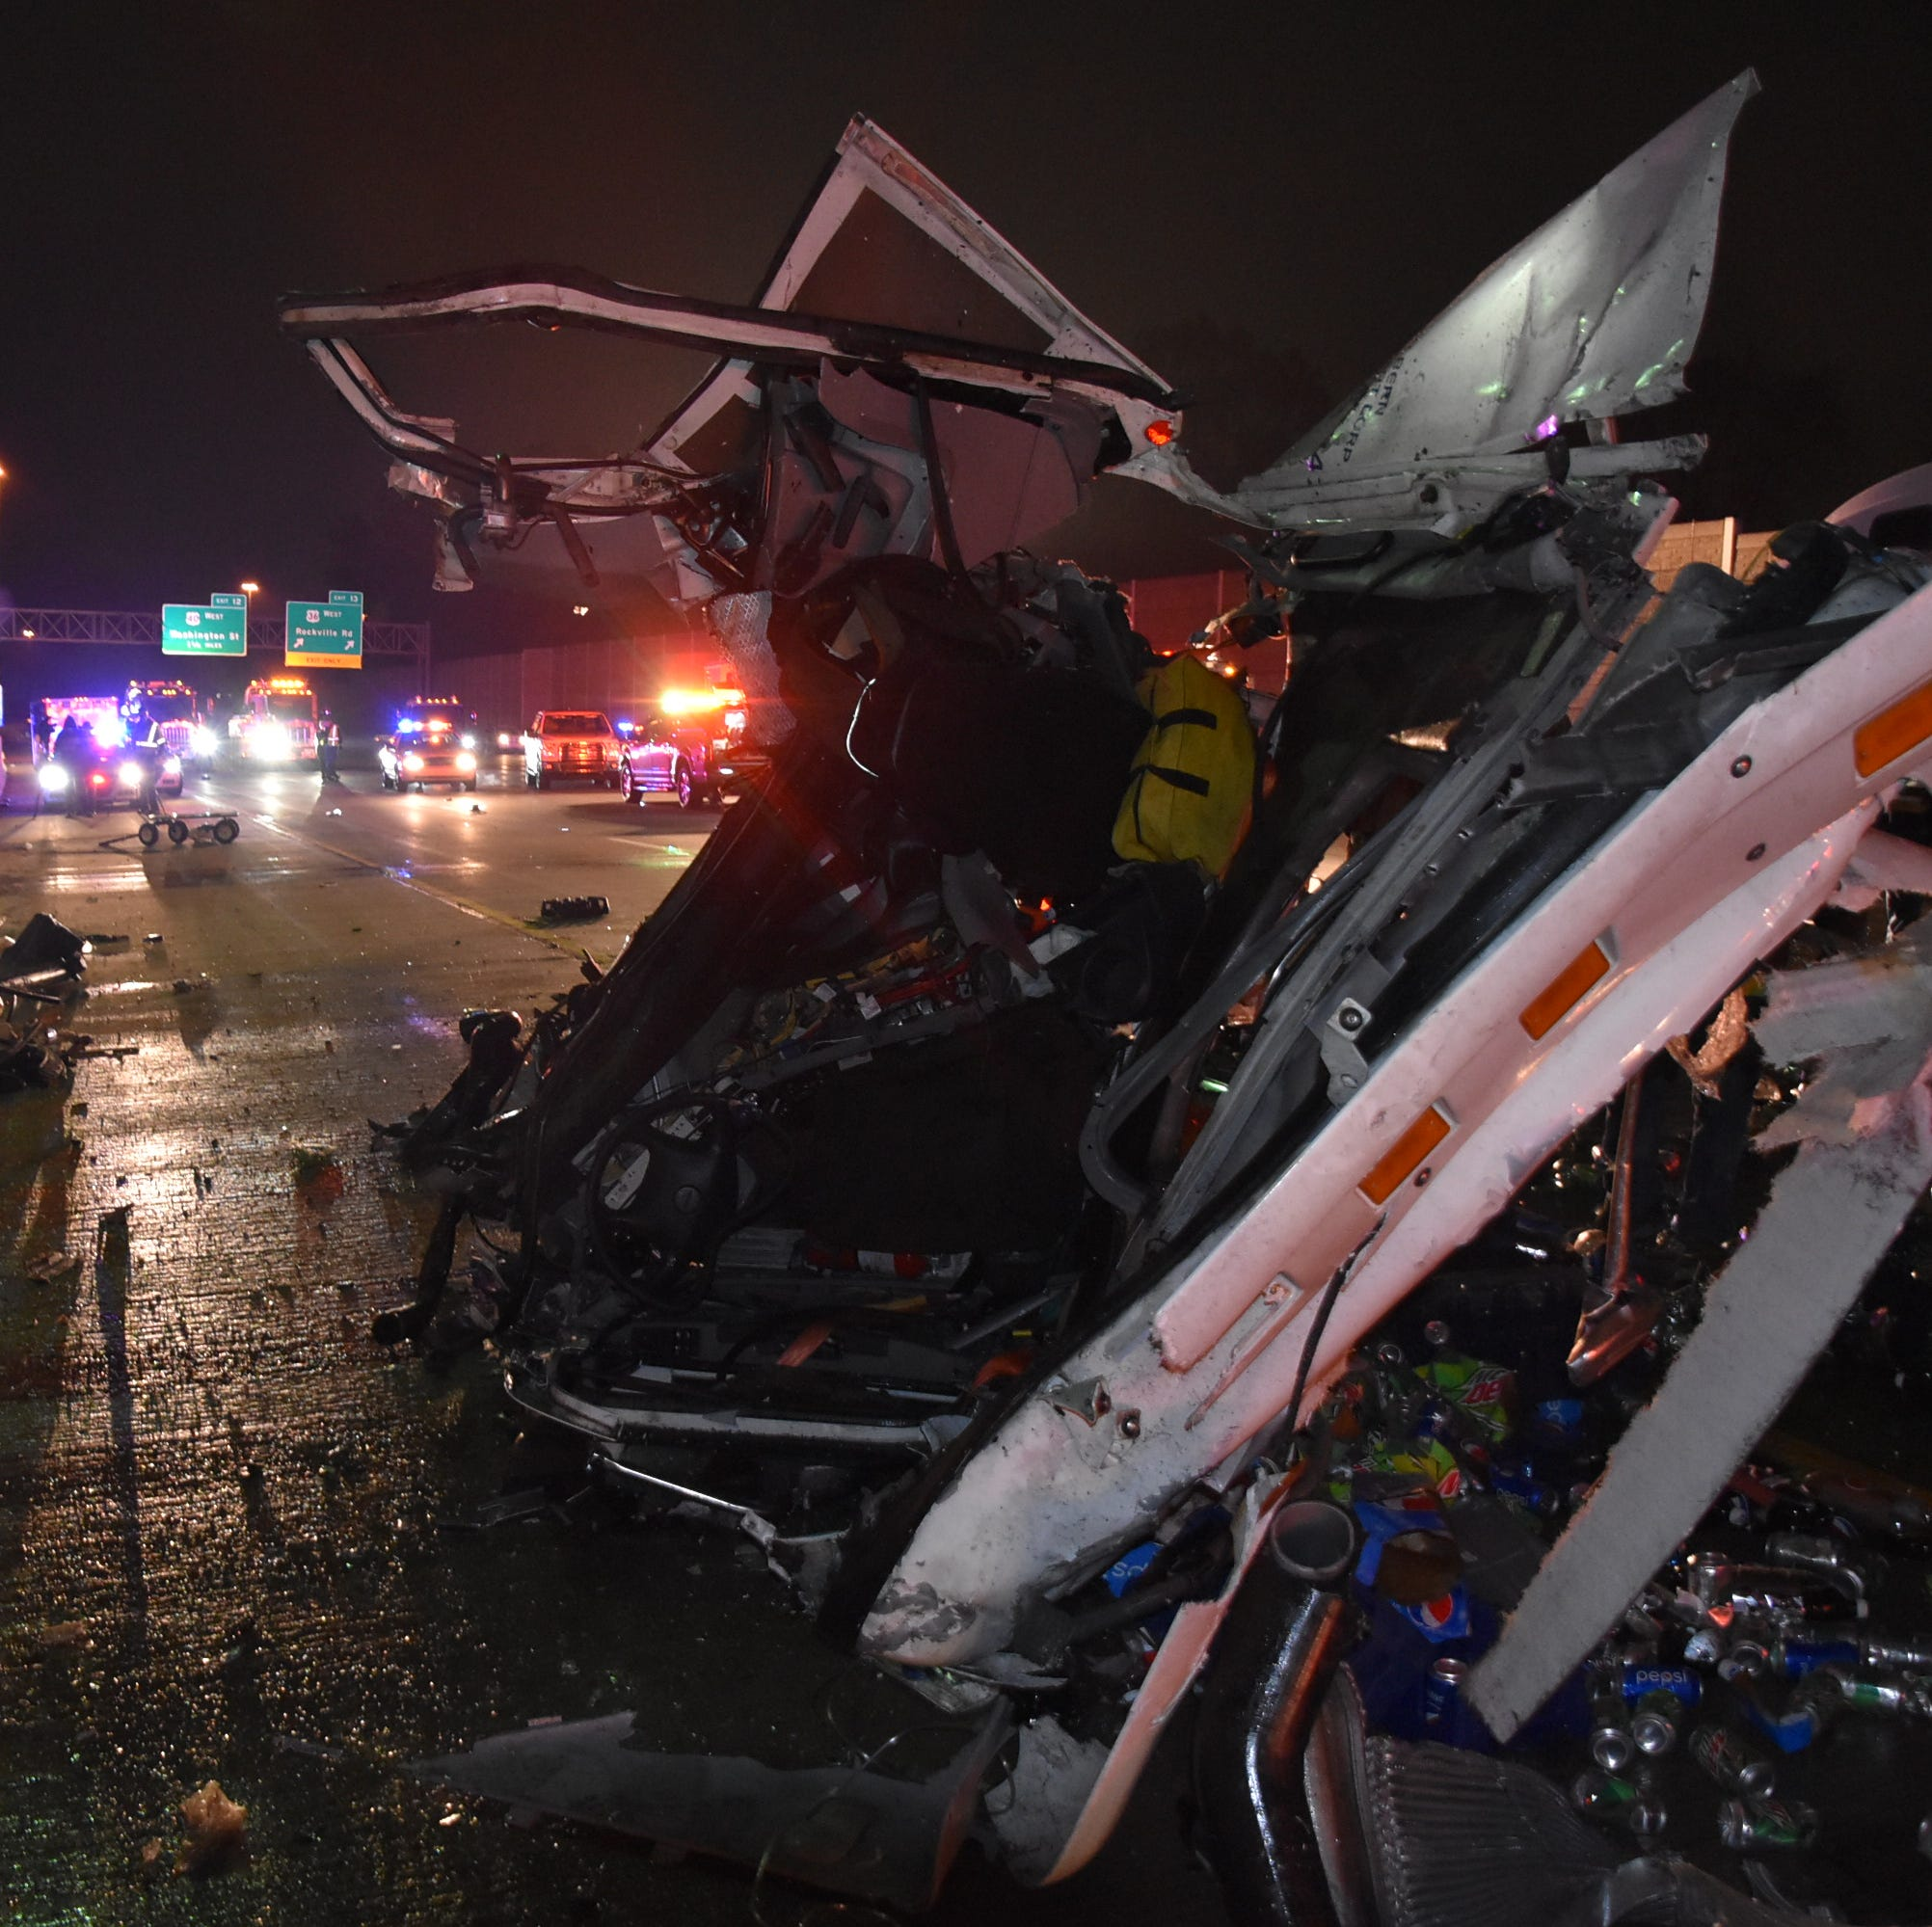 1 killed, 3 critical in two serious I-465 crashes in the same location